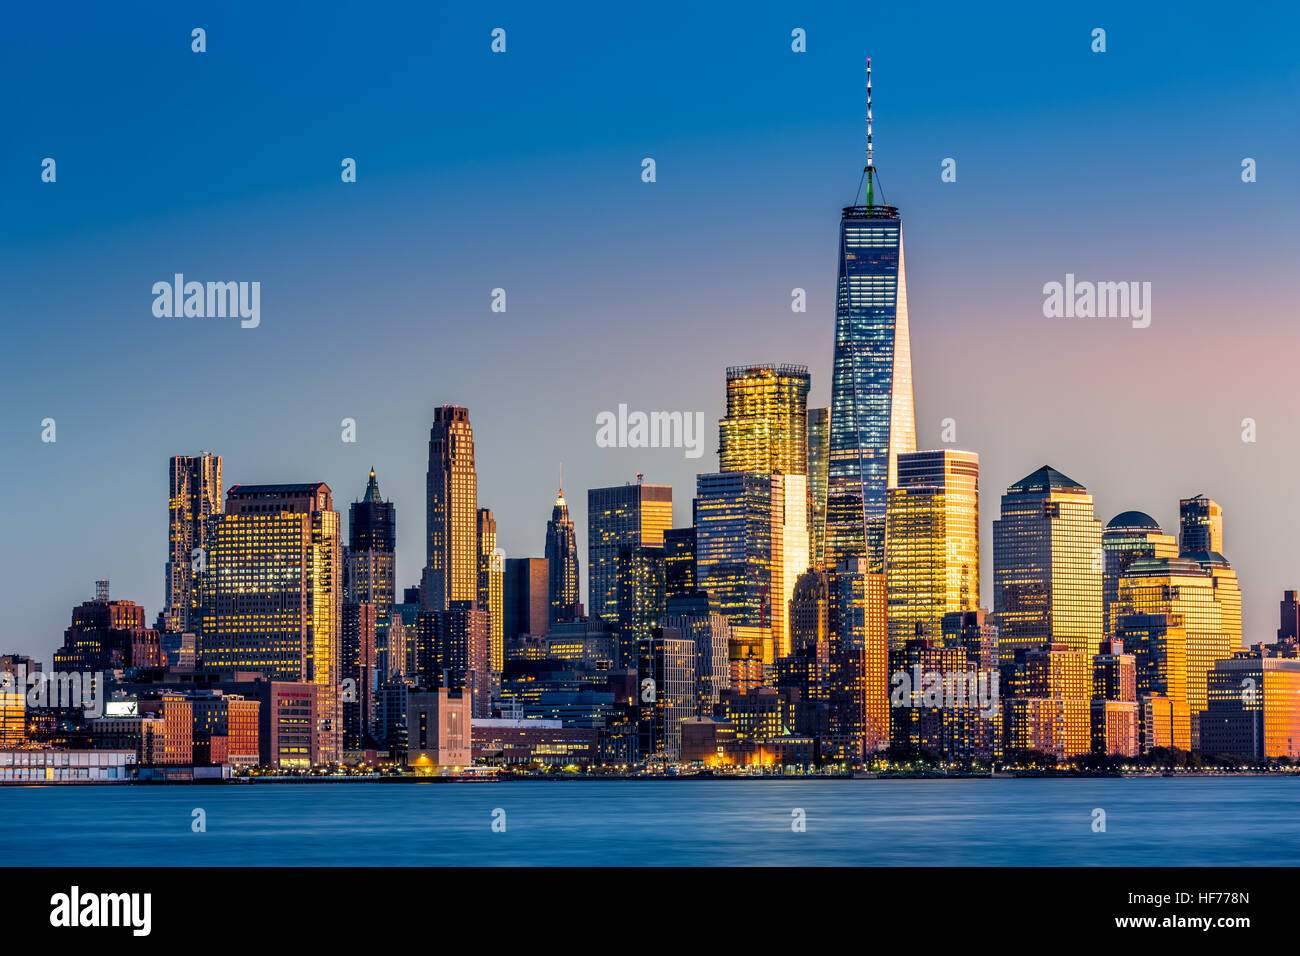 Lower Manhattan au coucher du soleil vu de Hoboken, New Jersey Photo Stock